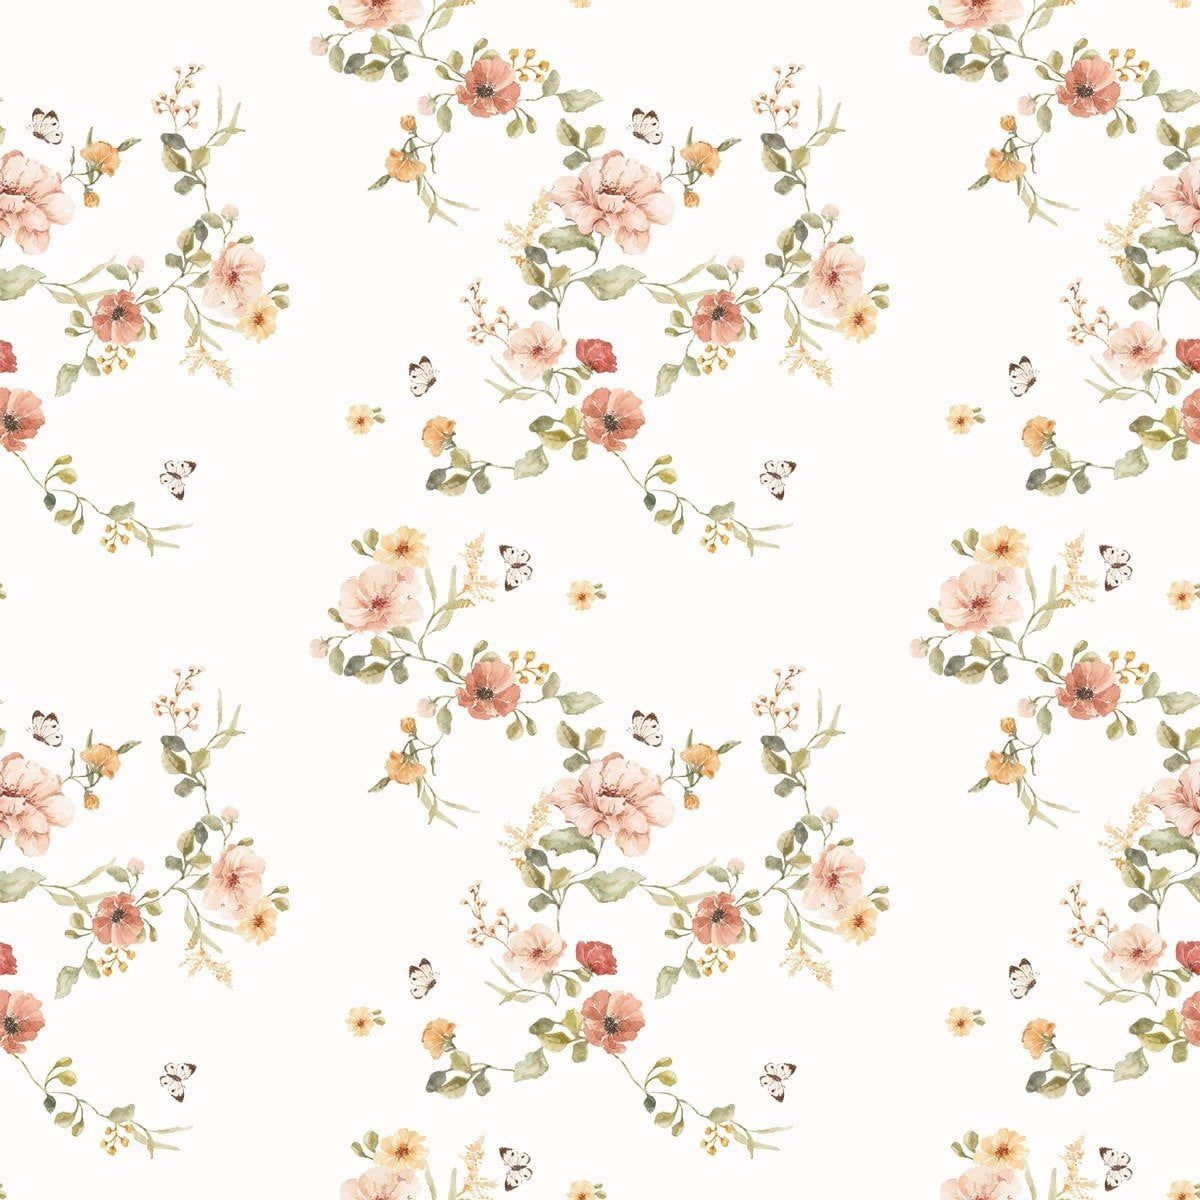 Floral Vintage Wallpaper Dekornik Com Wallstickers And